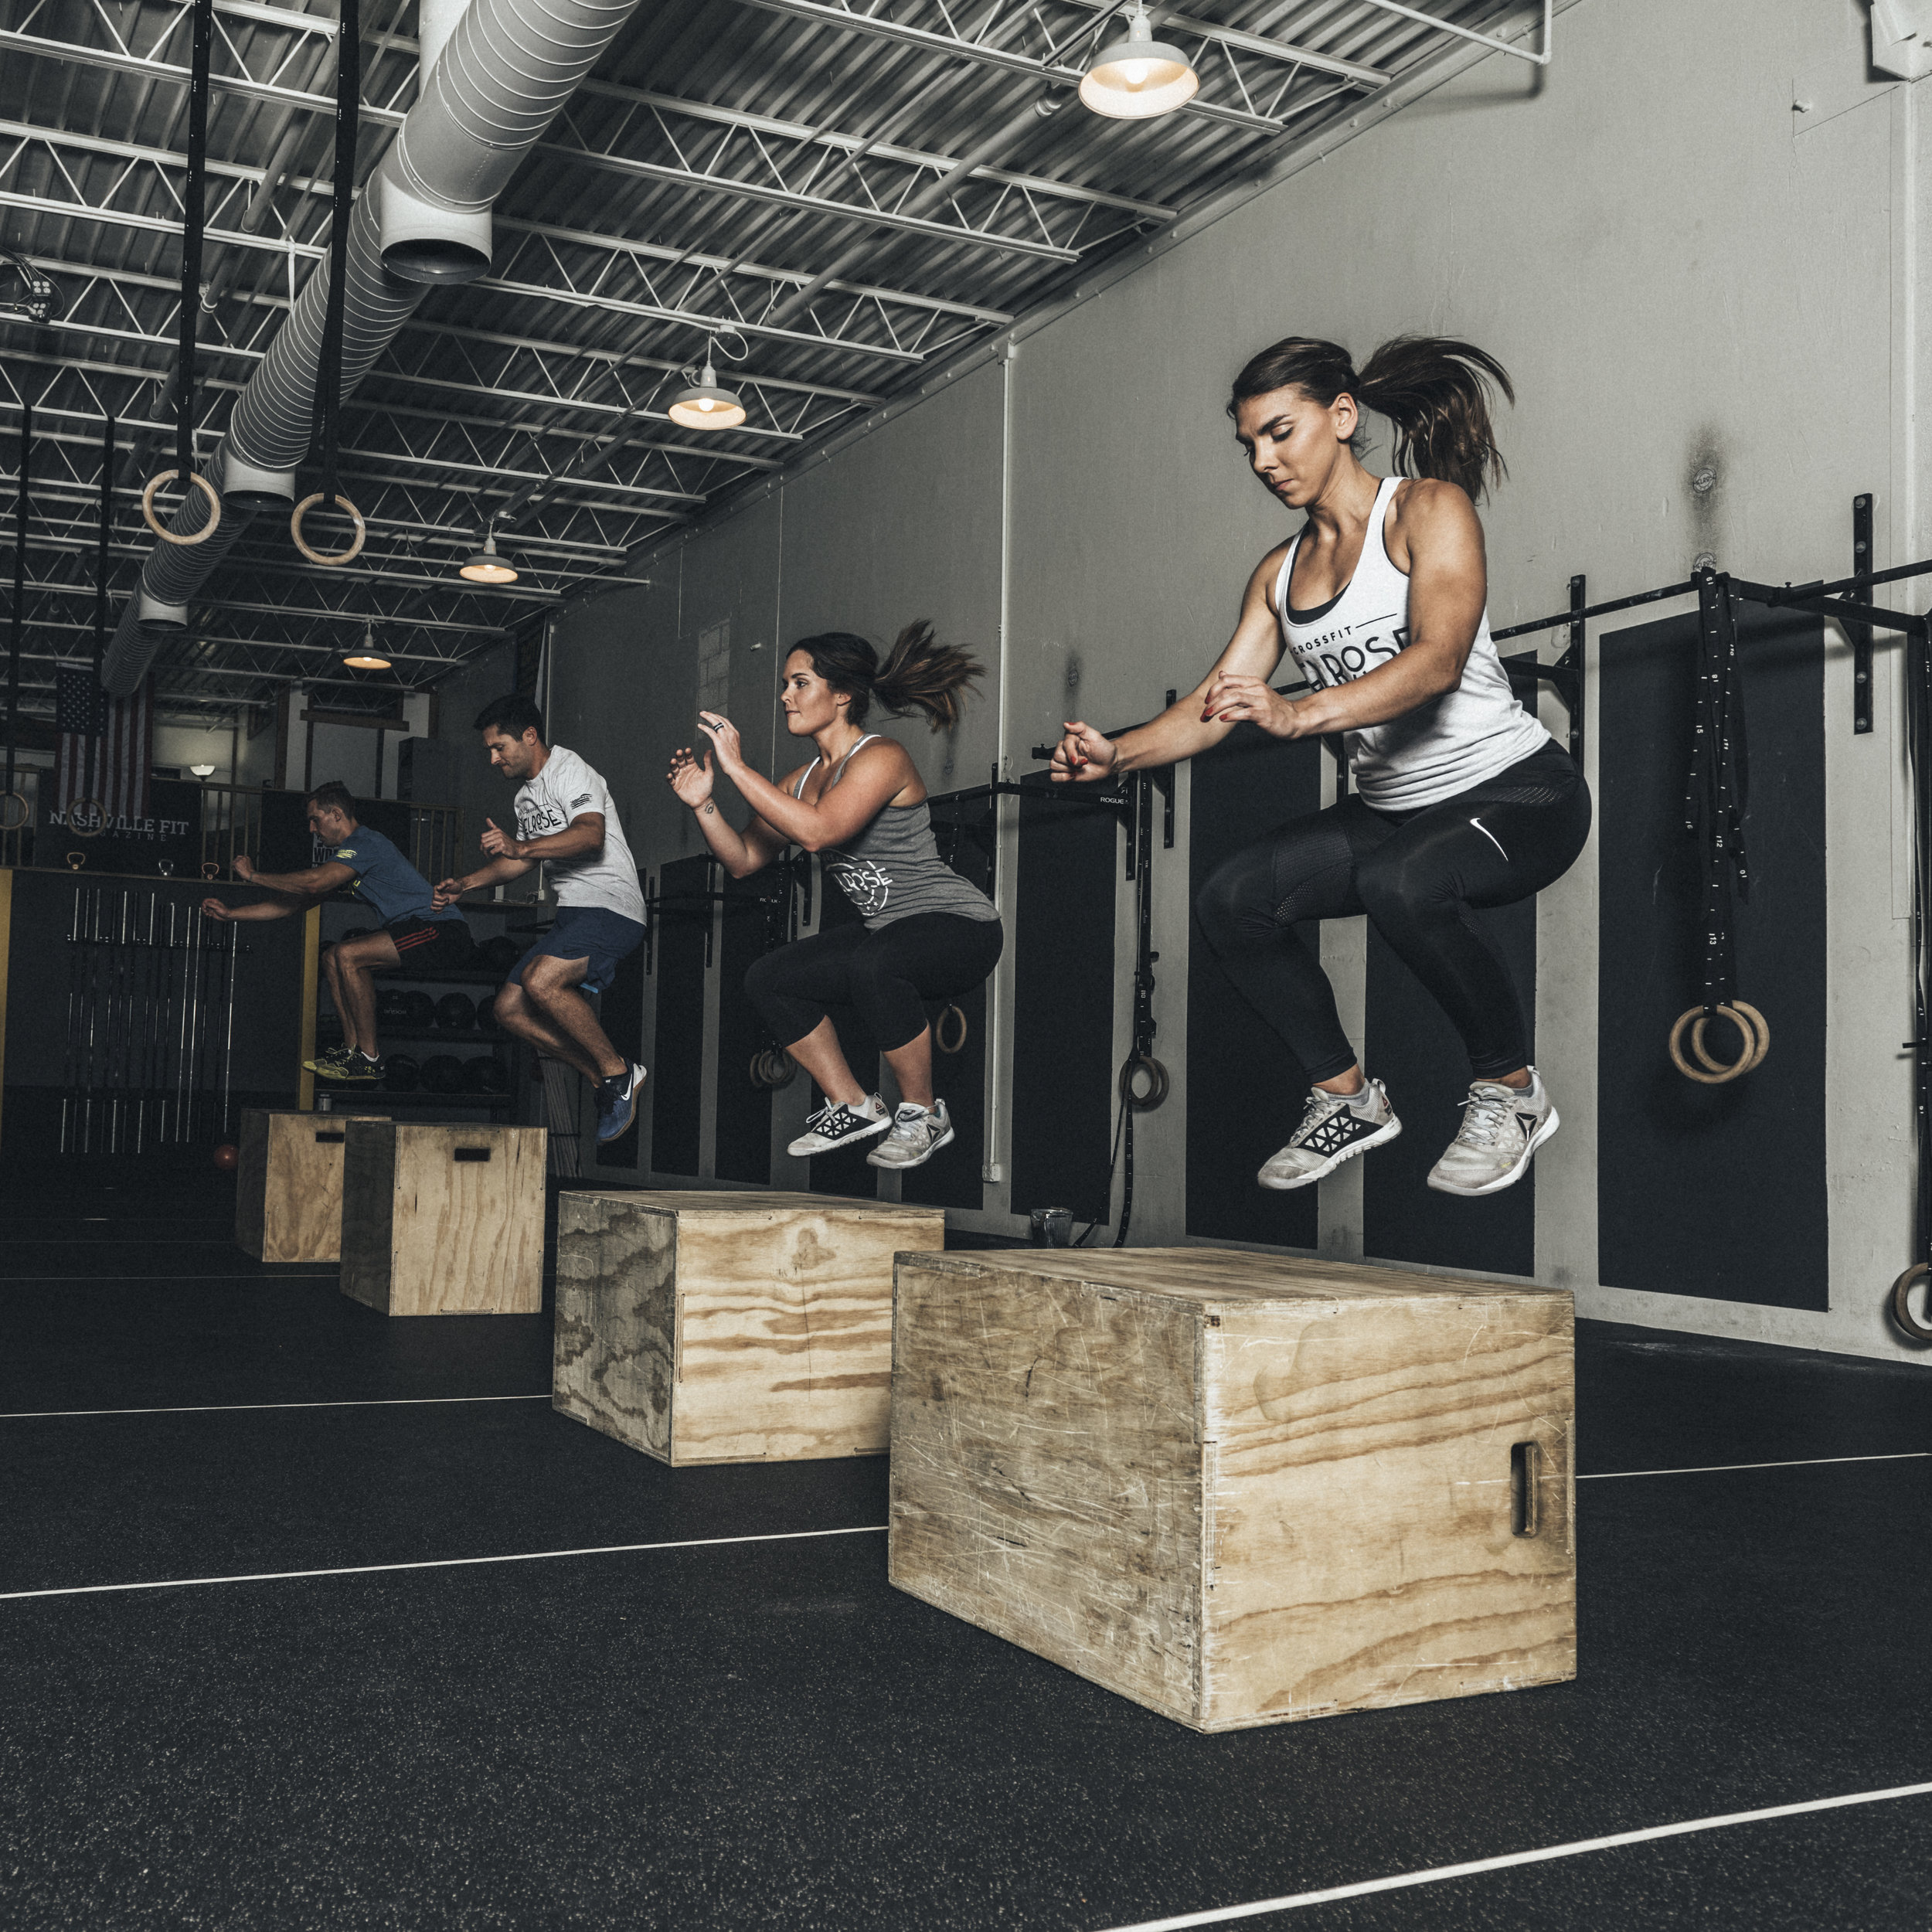 Nashletics, home of CrossFit Melrose and Afterburn, will move facilities to increase facility size. Nashletics houses the highest certified CrossFit trainer in the state of Tennessee and other health professionals including a Doctor of Physical Therapy.